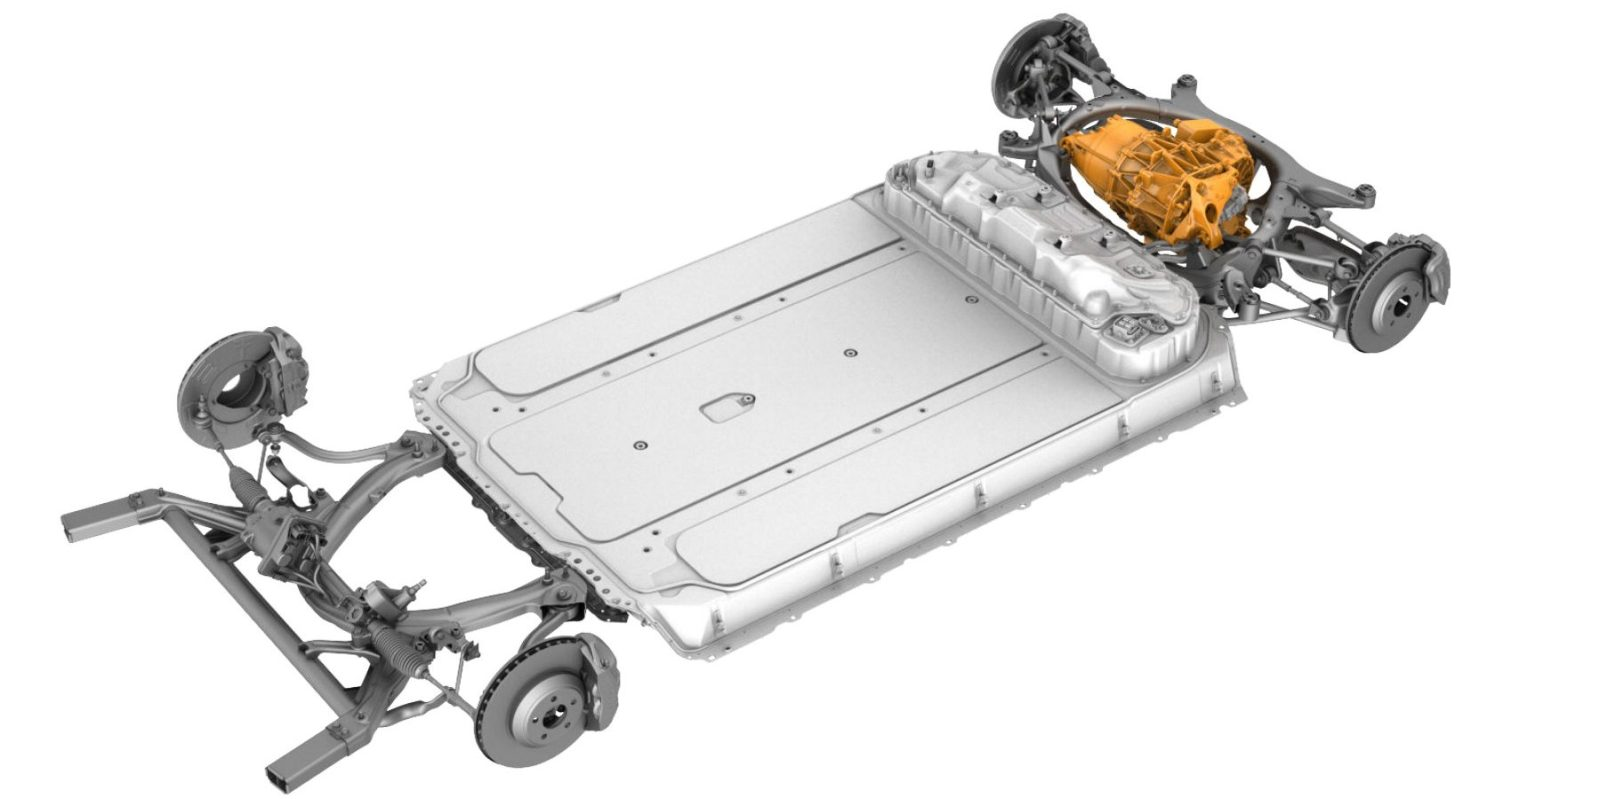 How much is a new battery for tesla model 3